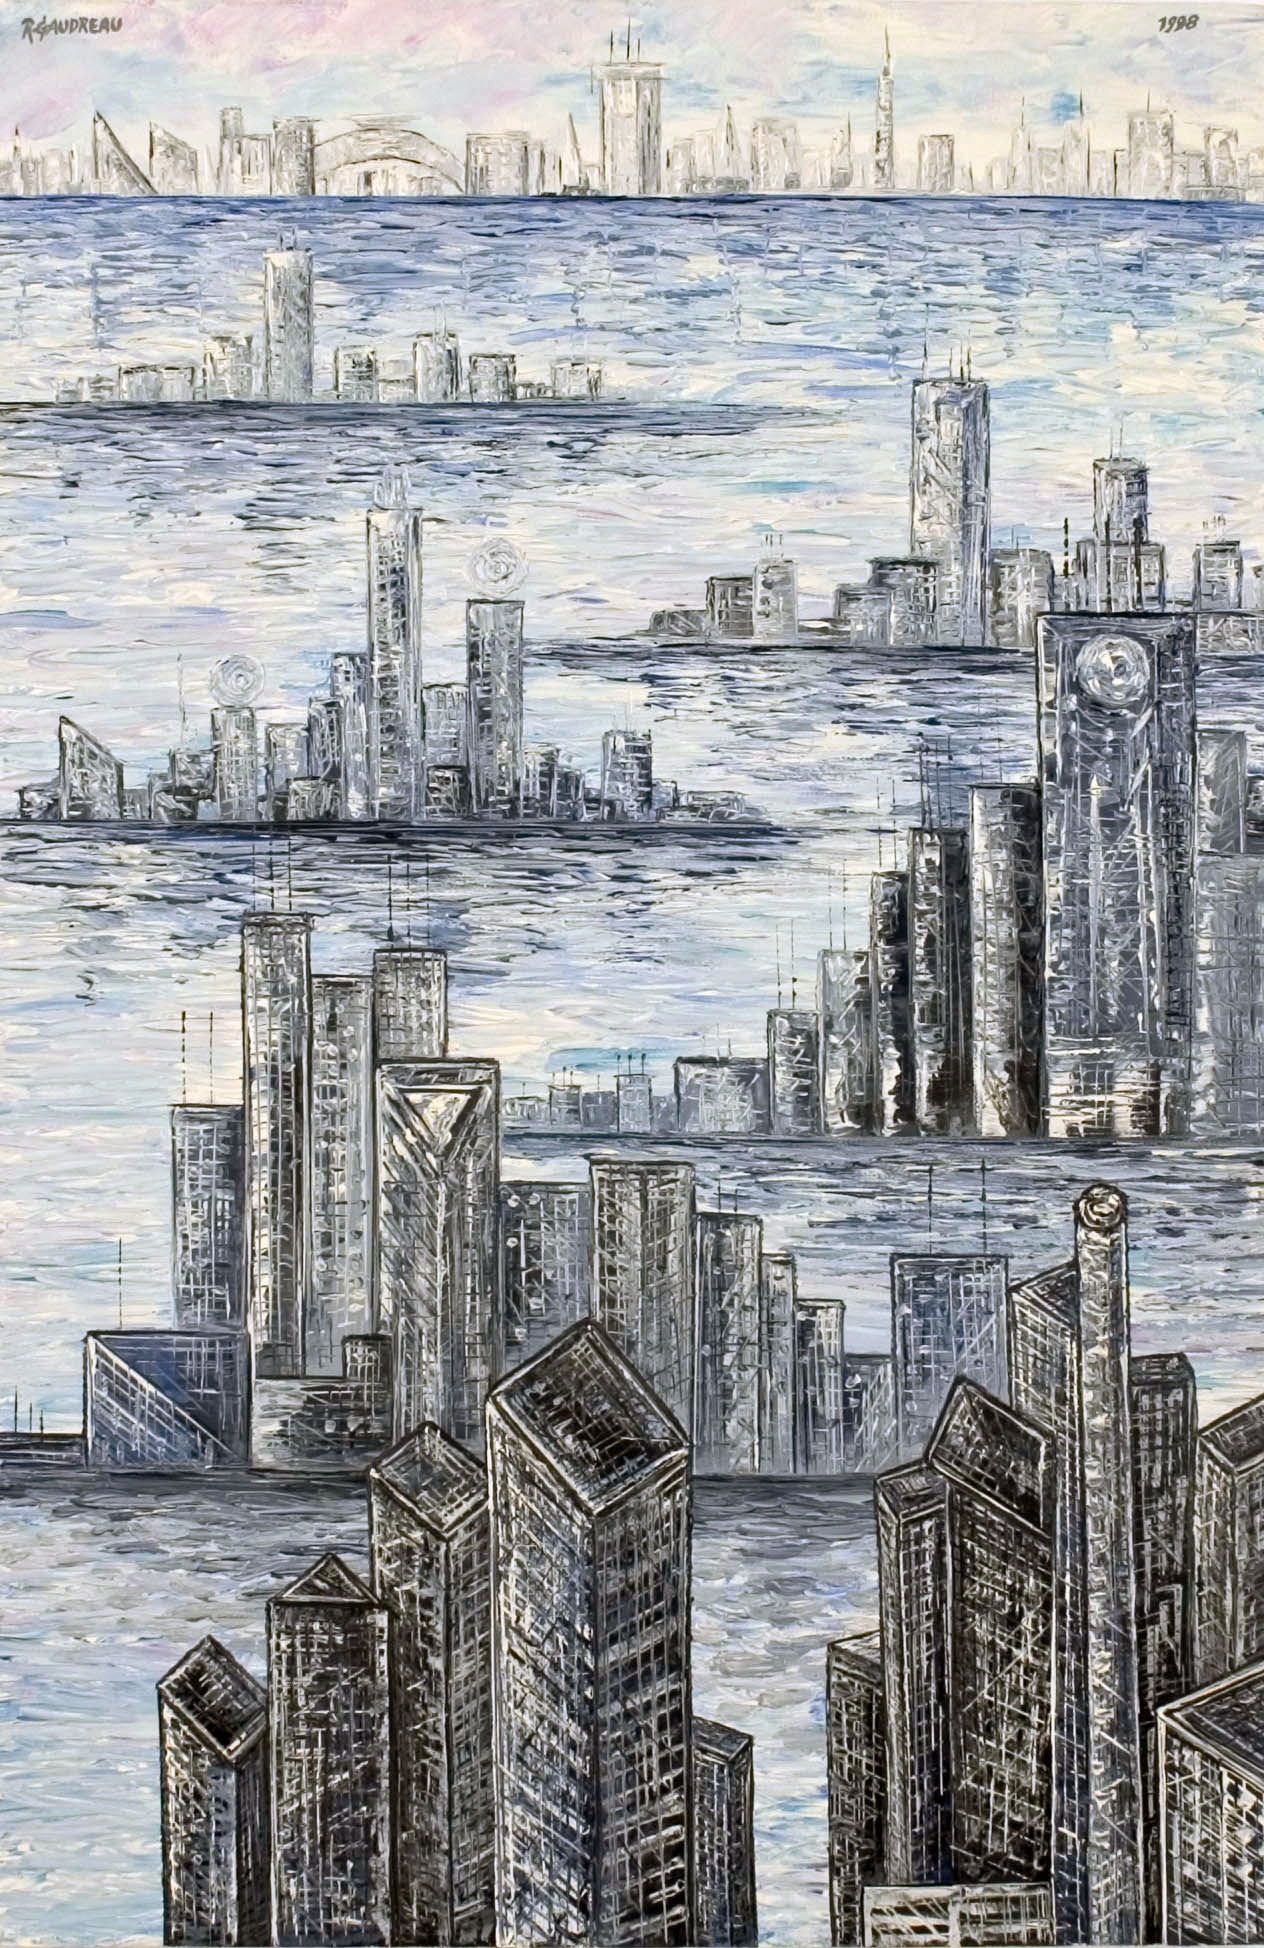 City Ships   1998 oil knife painting on canvas 30 x 20 inches